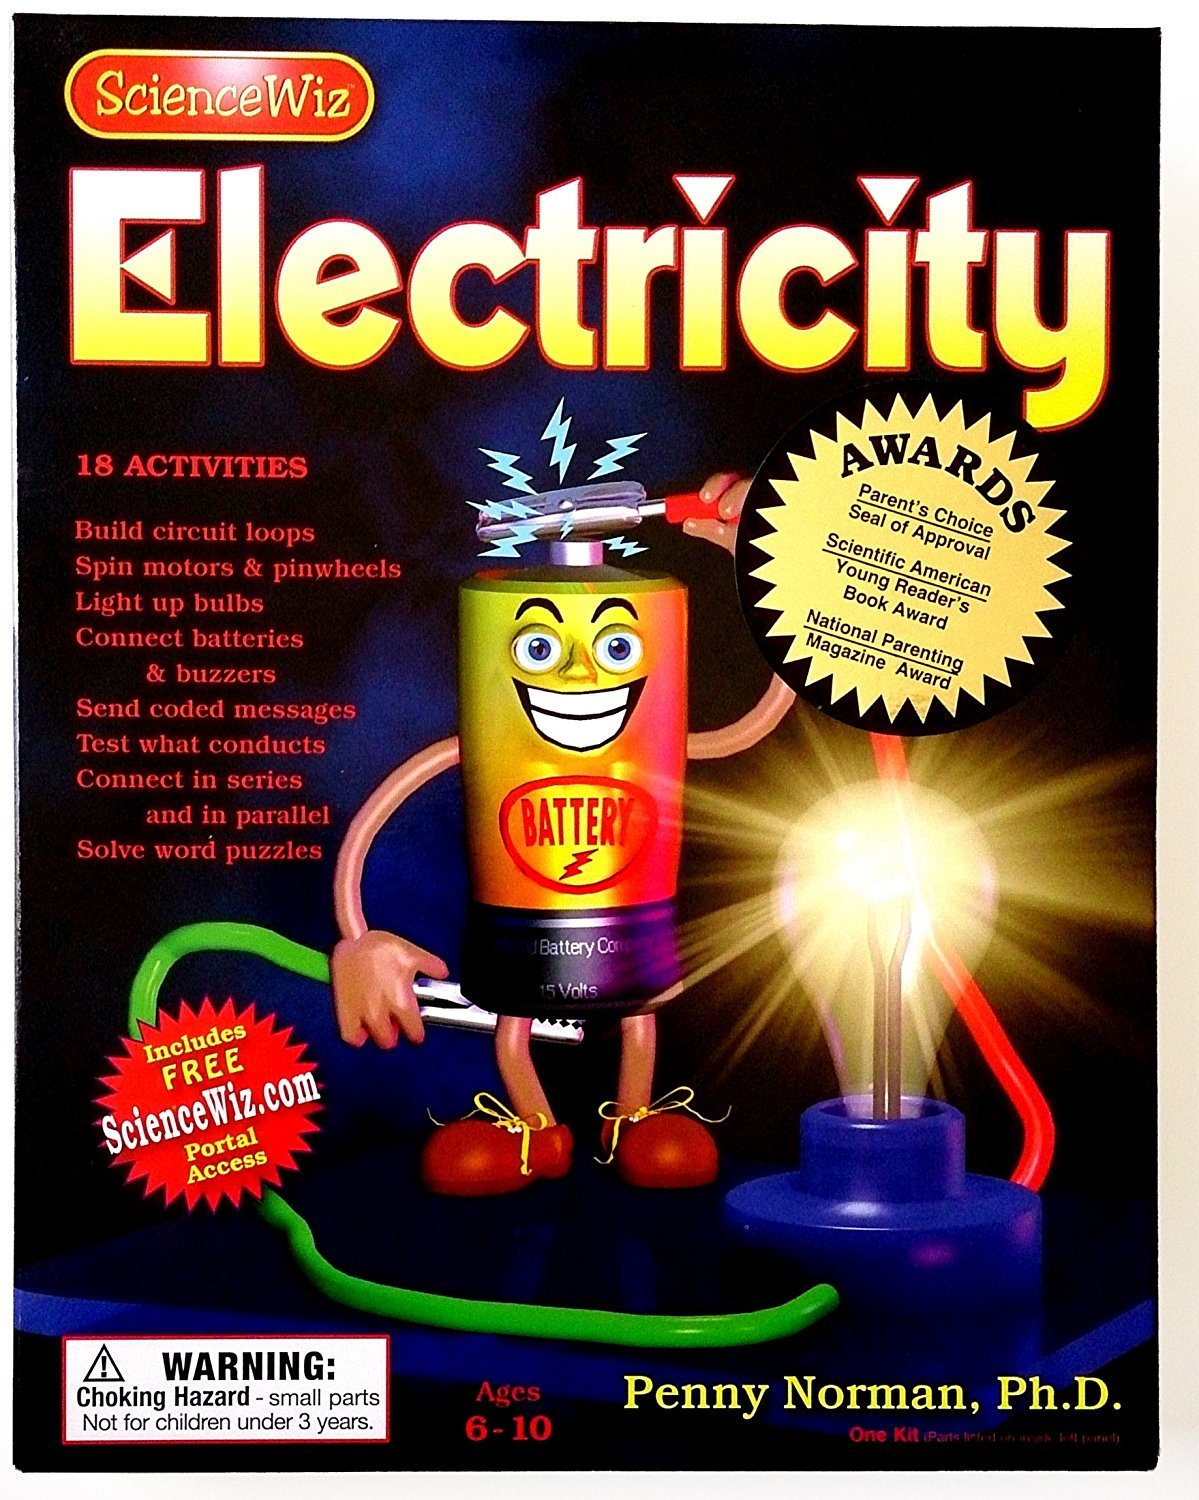 New Sciencewiz Electricity Kit Science Educational Set Snap Circuits Jr Sc 100 Electronics Discovery Factory Sealed For Children Kids Fun Ages 5 Toys Games